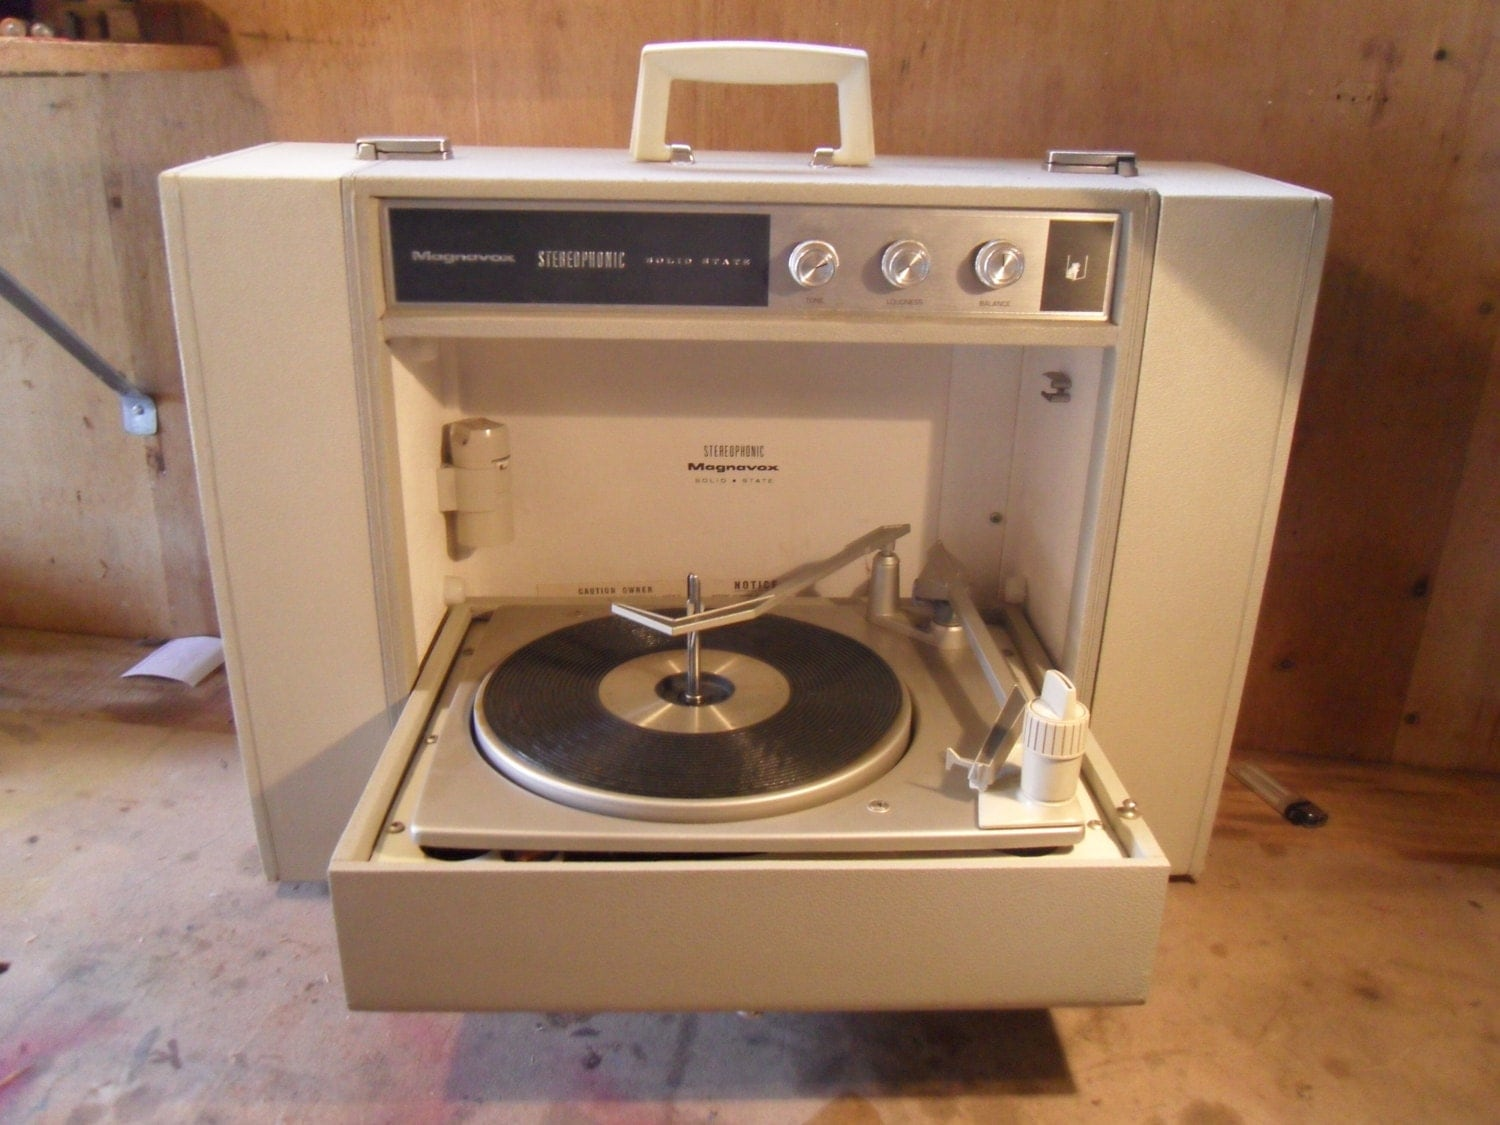 Sears roeb 4622 also Watch further Vintage Radio Schematics together with Phonograph silvertone likewise Vintage 1970s Magnavox Portable Stereo. on sears and roebuck silvertone radio